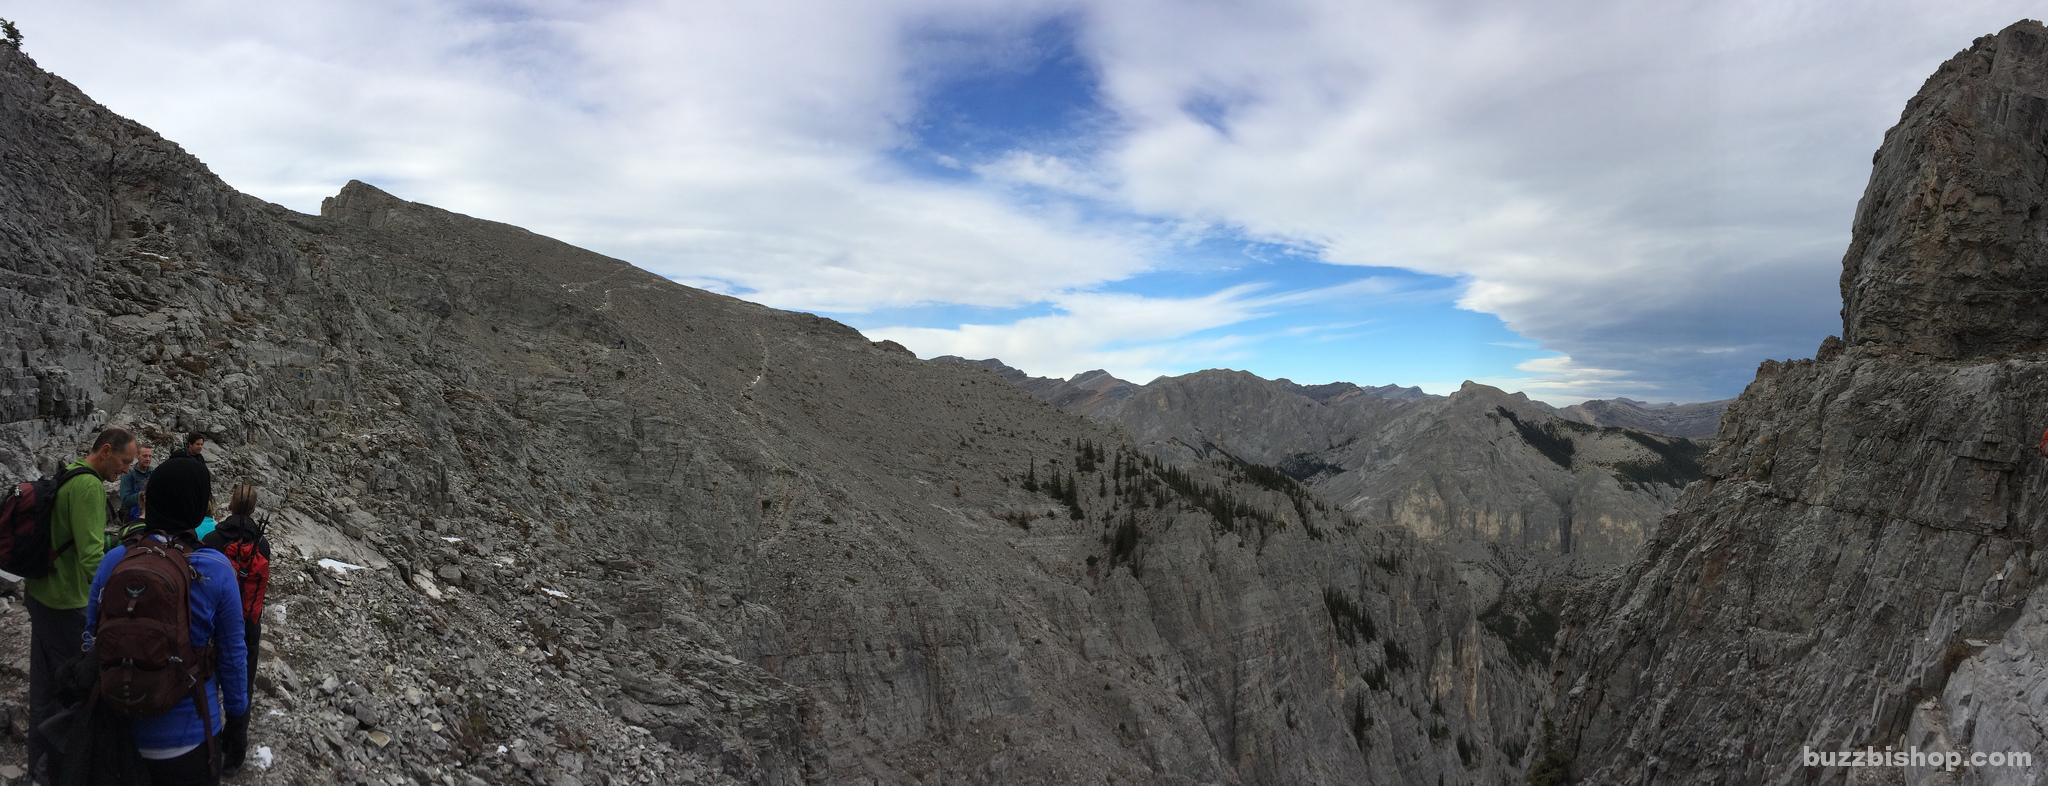 View at the Yamnuska Traverse